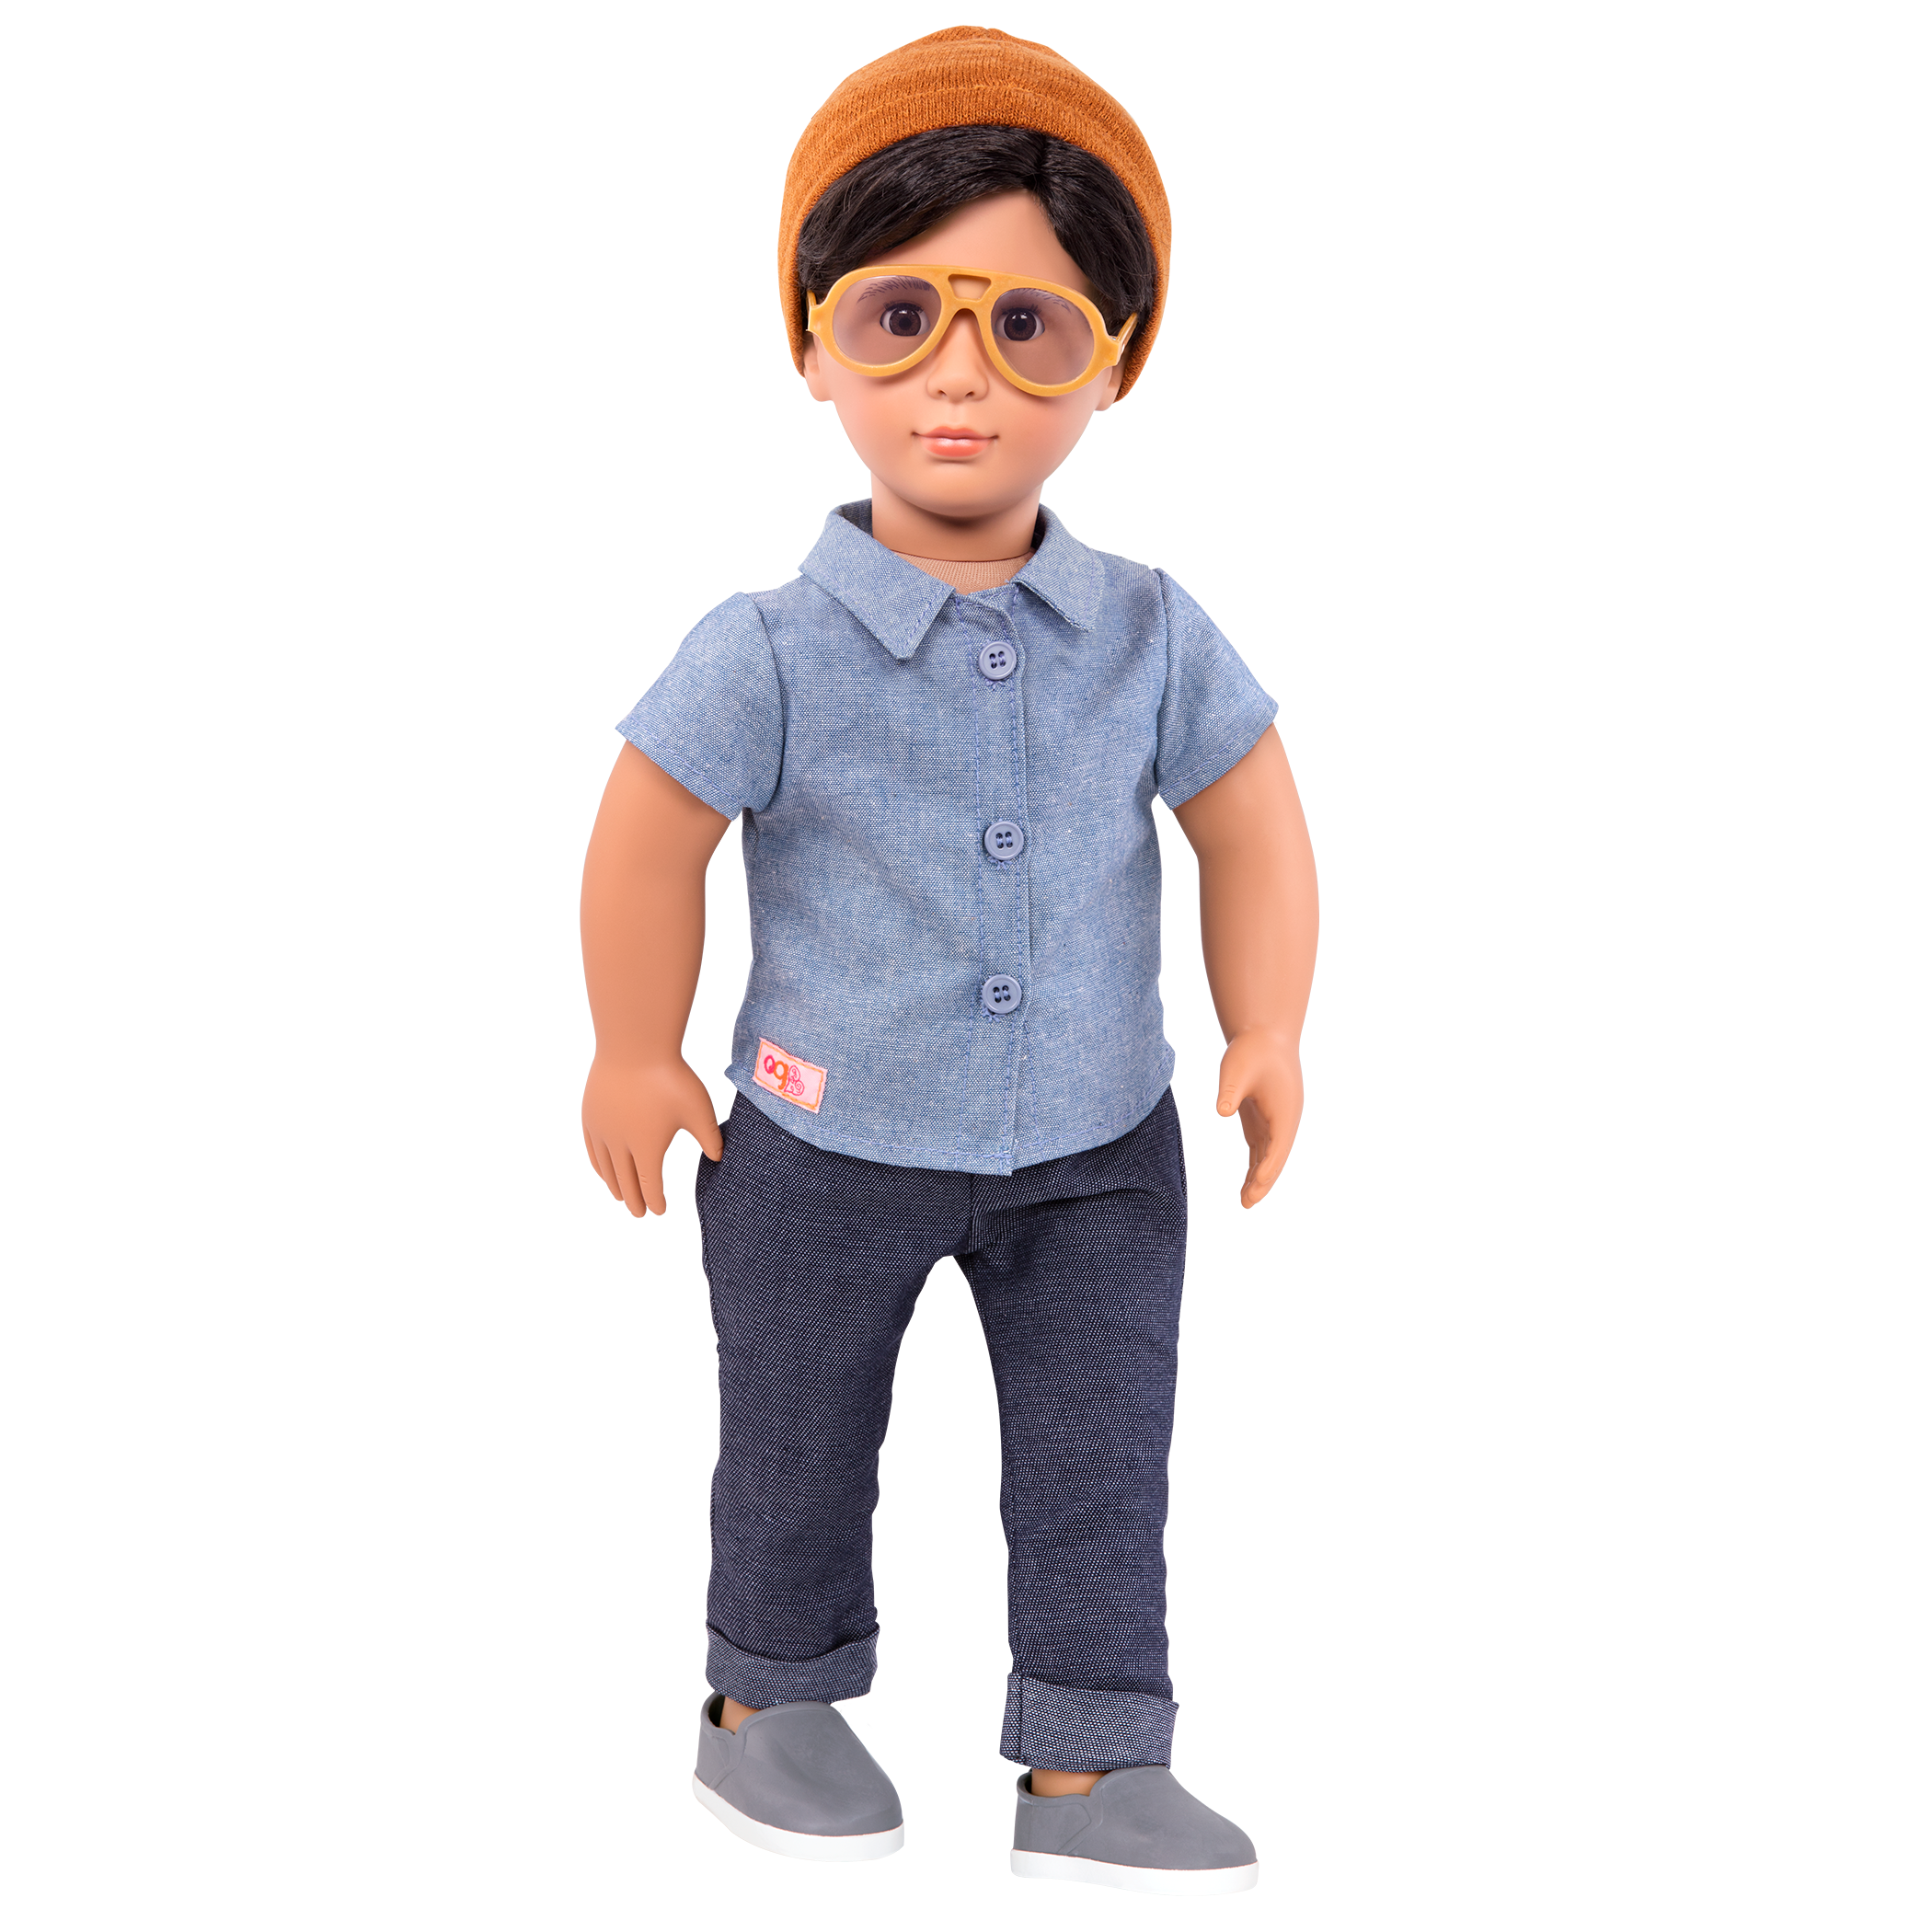 Franco Regular 18-inch Boy Doll wearing sunglass